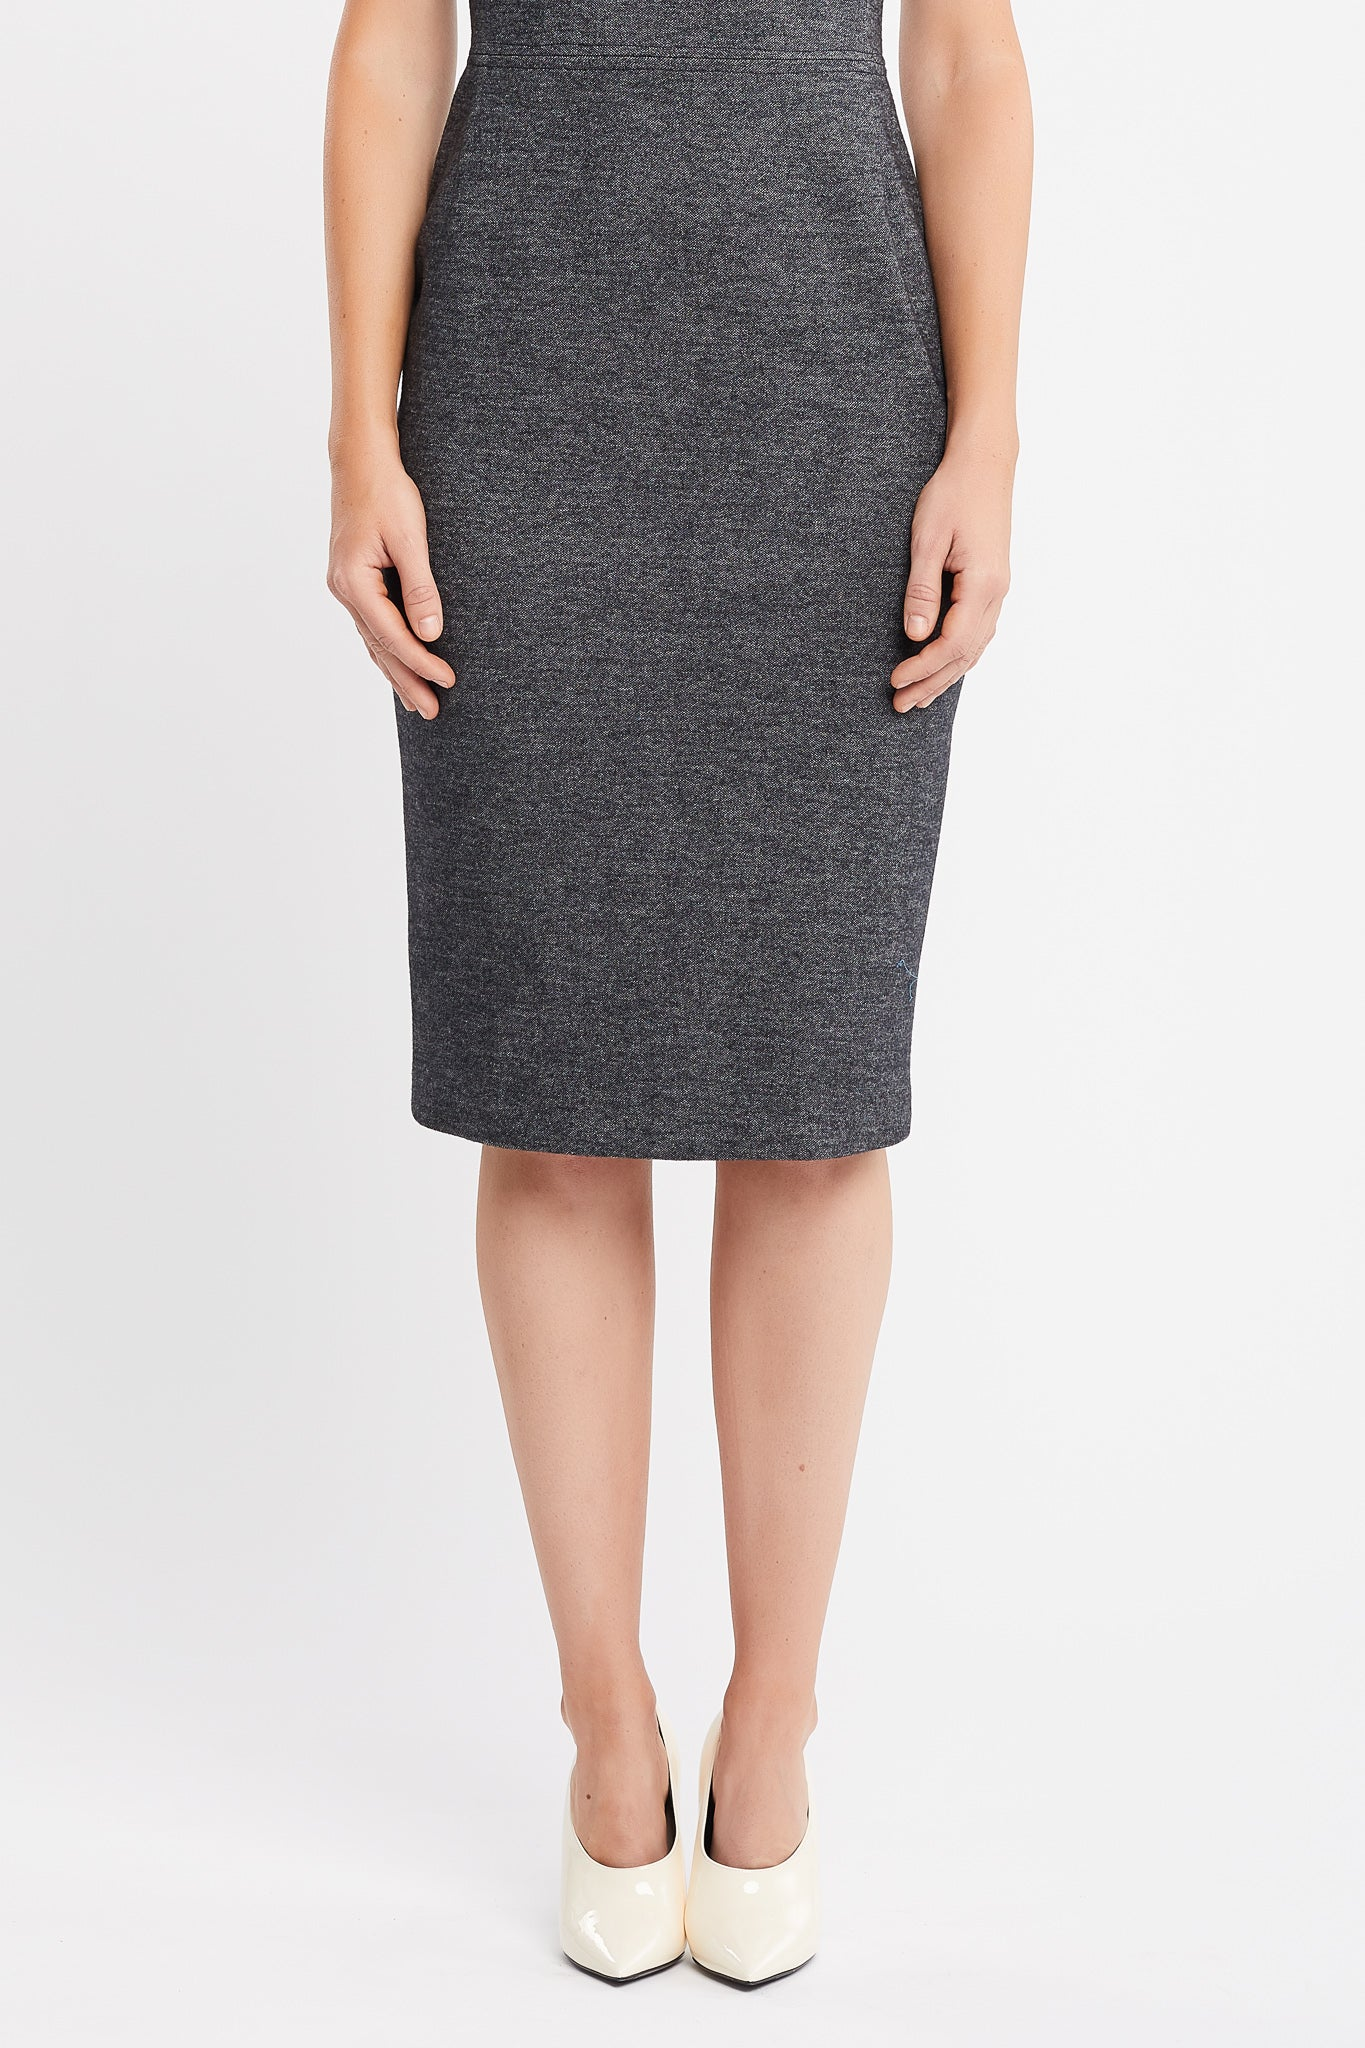 Charlie Short Sleeve Sheath Anthracite Tweed Work Dress